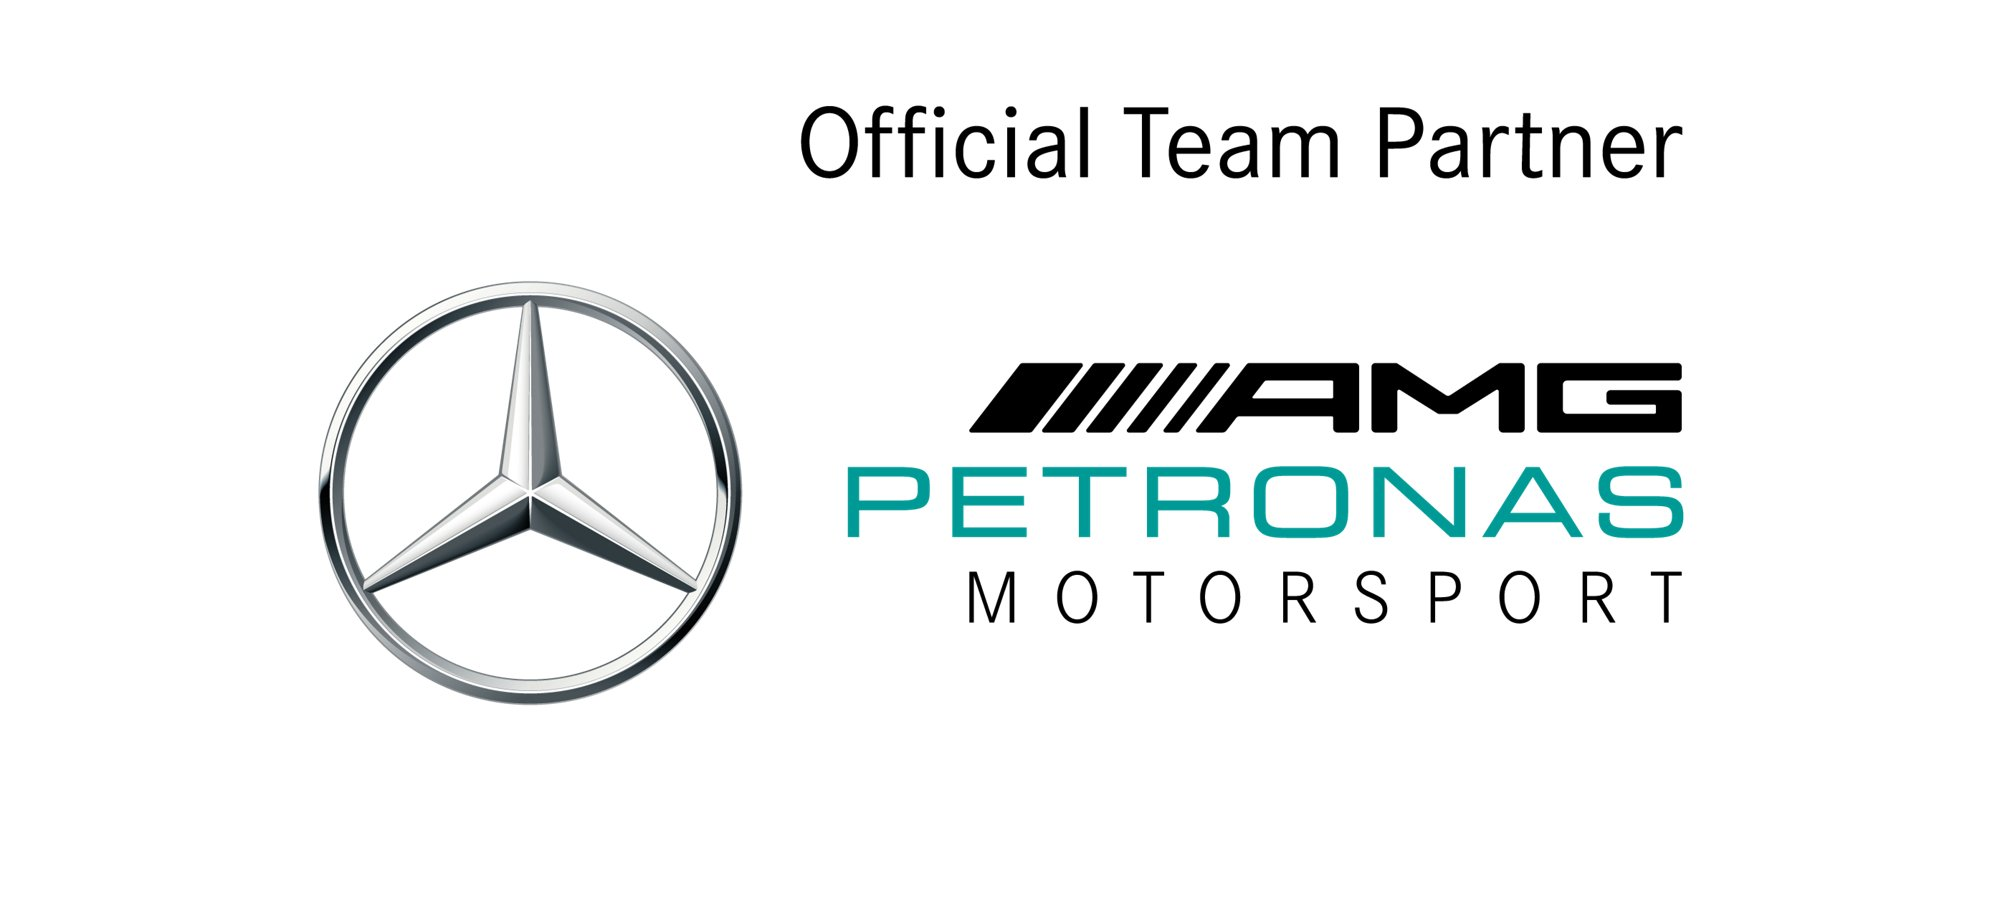 Partnership with the MERCEDES AMG PETRONAS Formula One Team